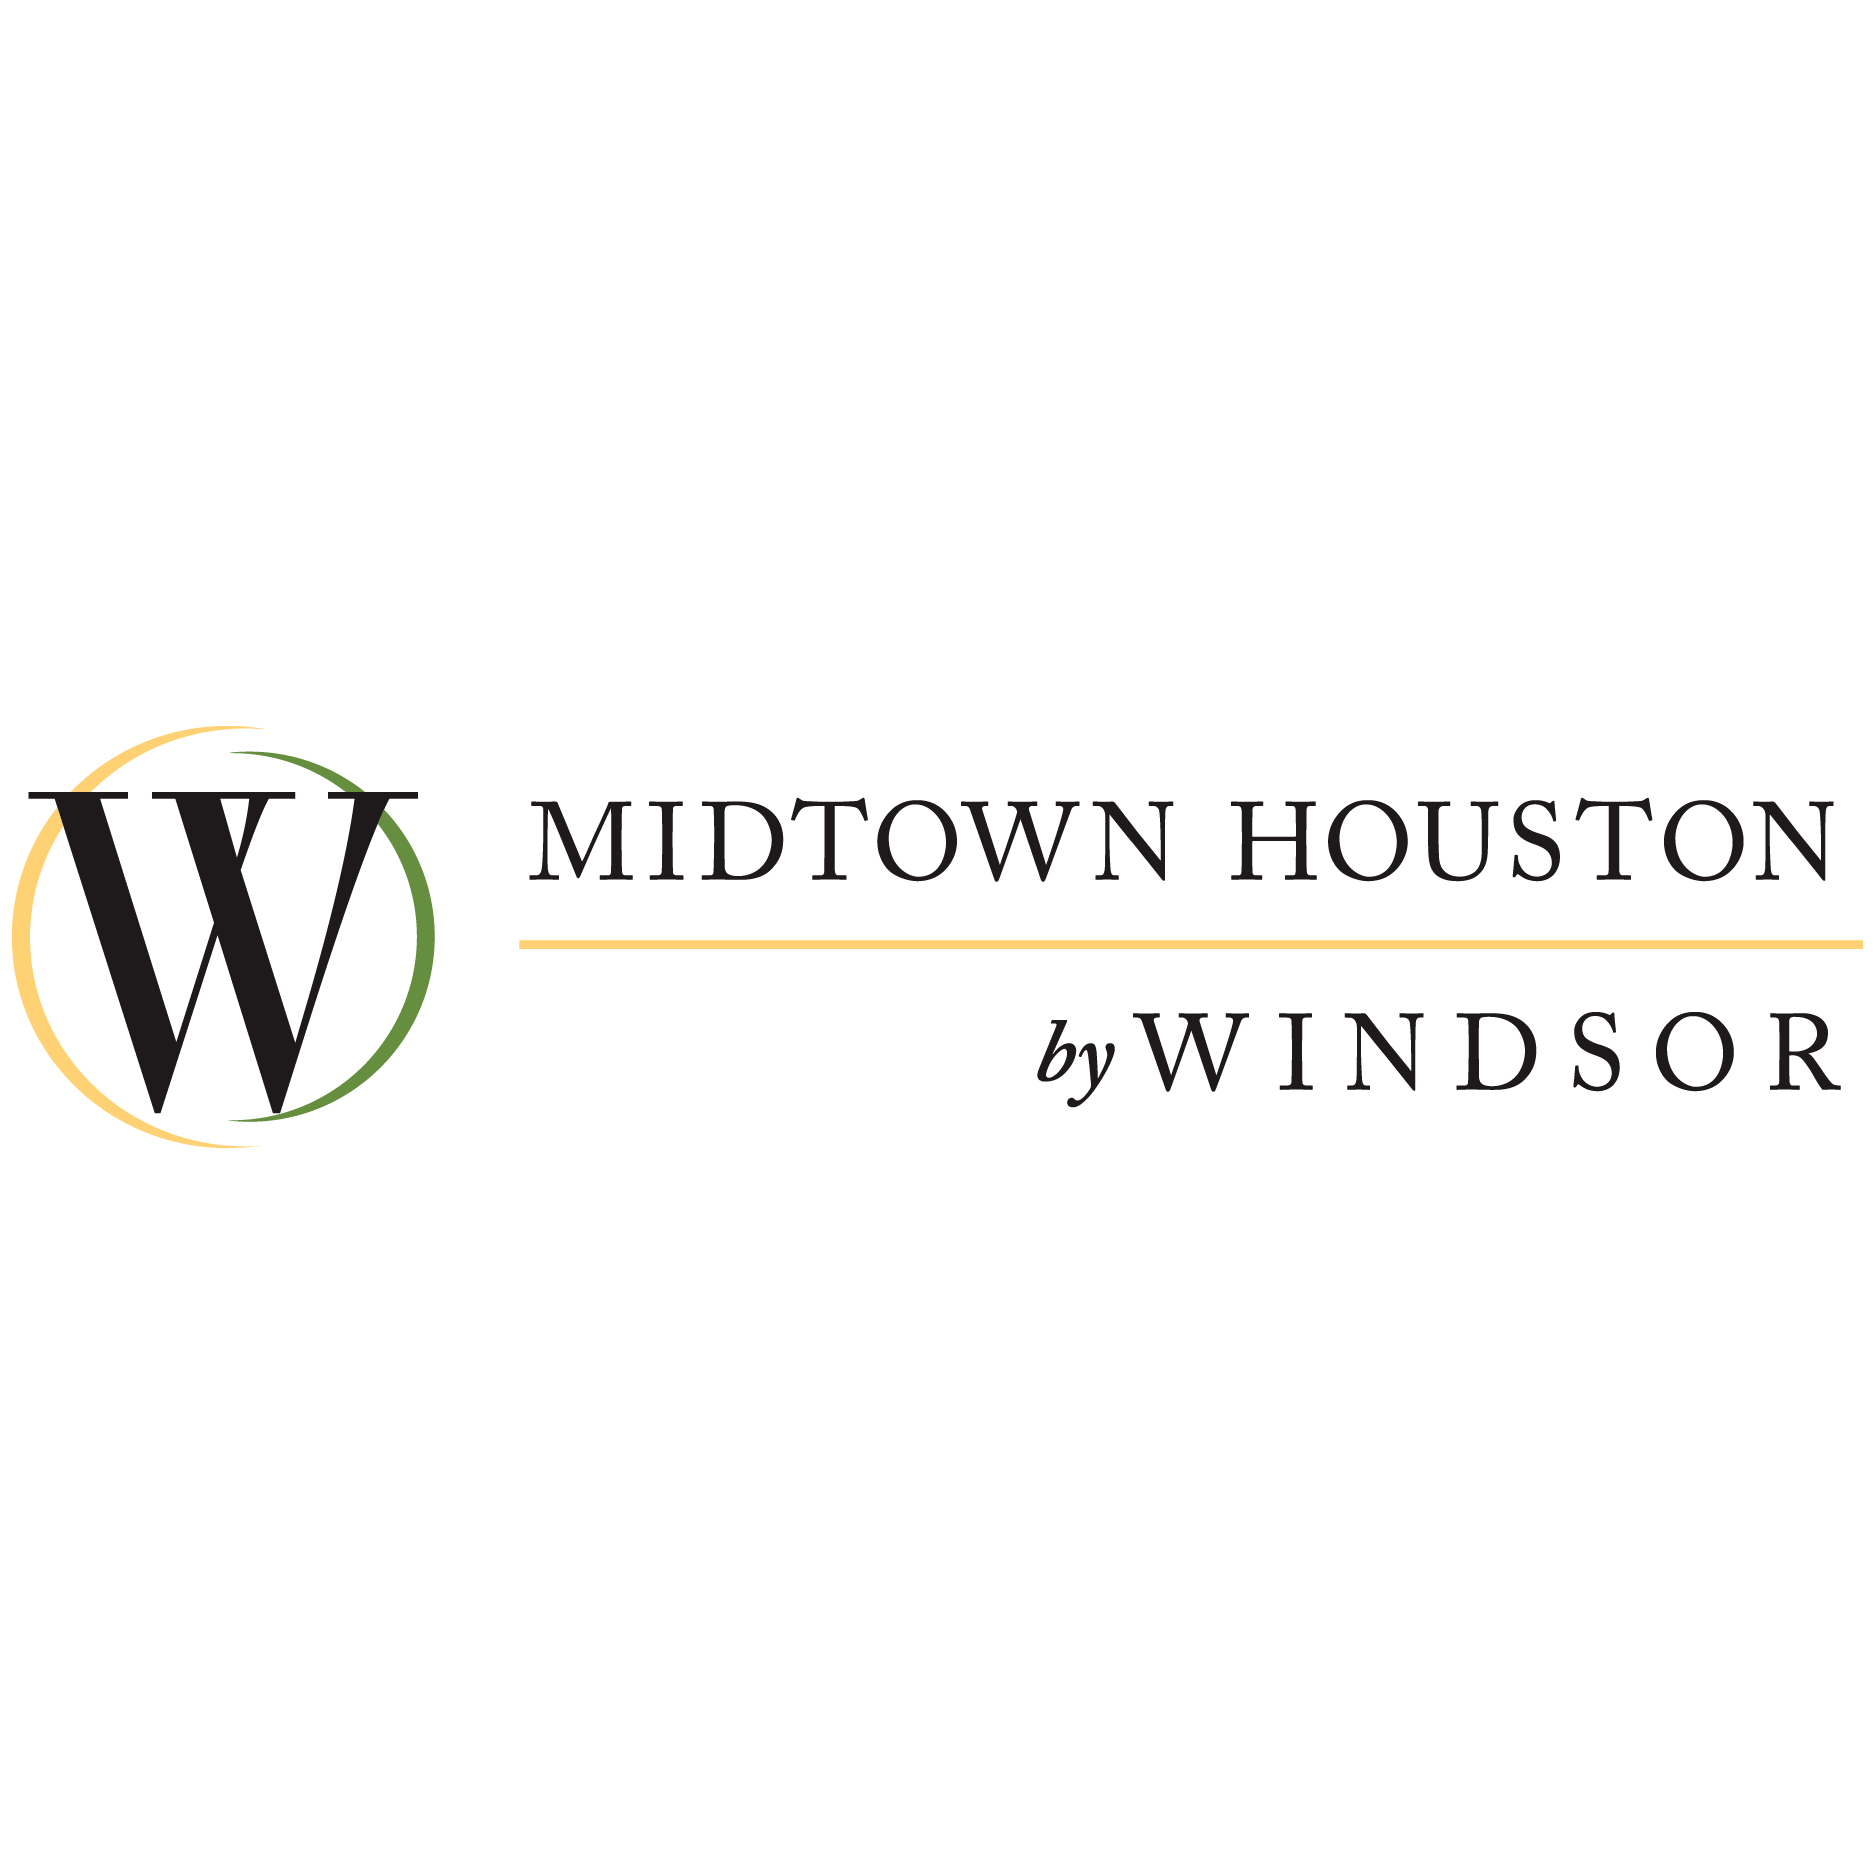 Midtown Houston by Windsor